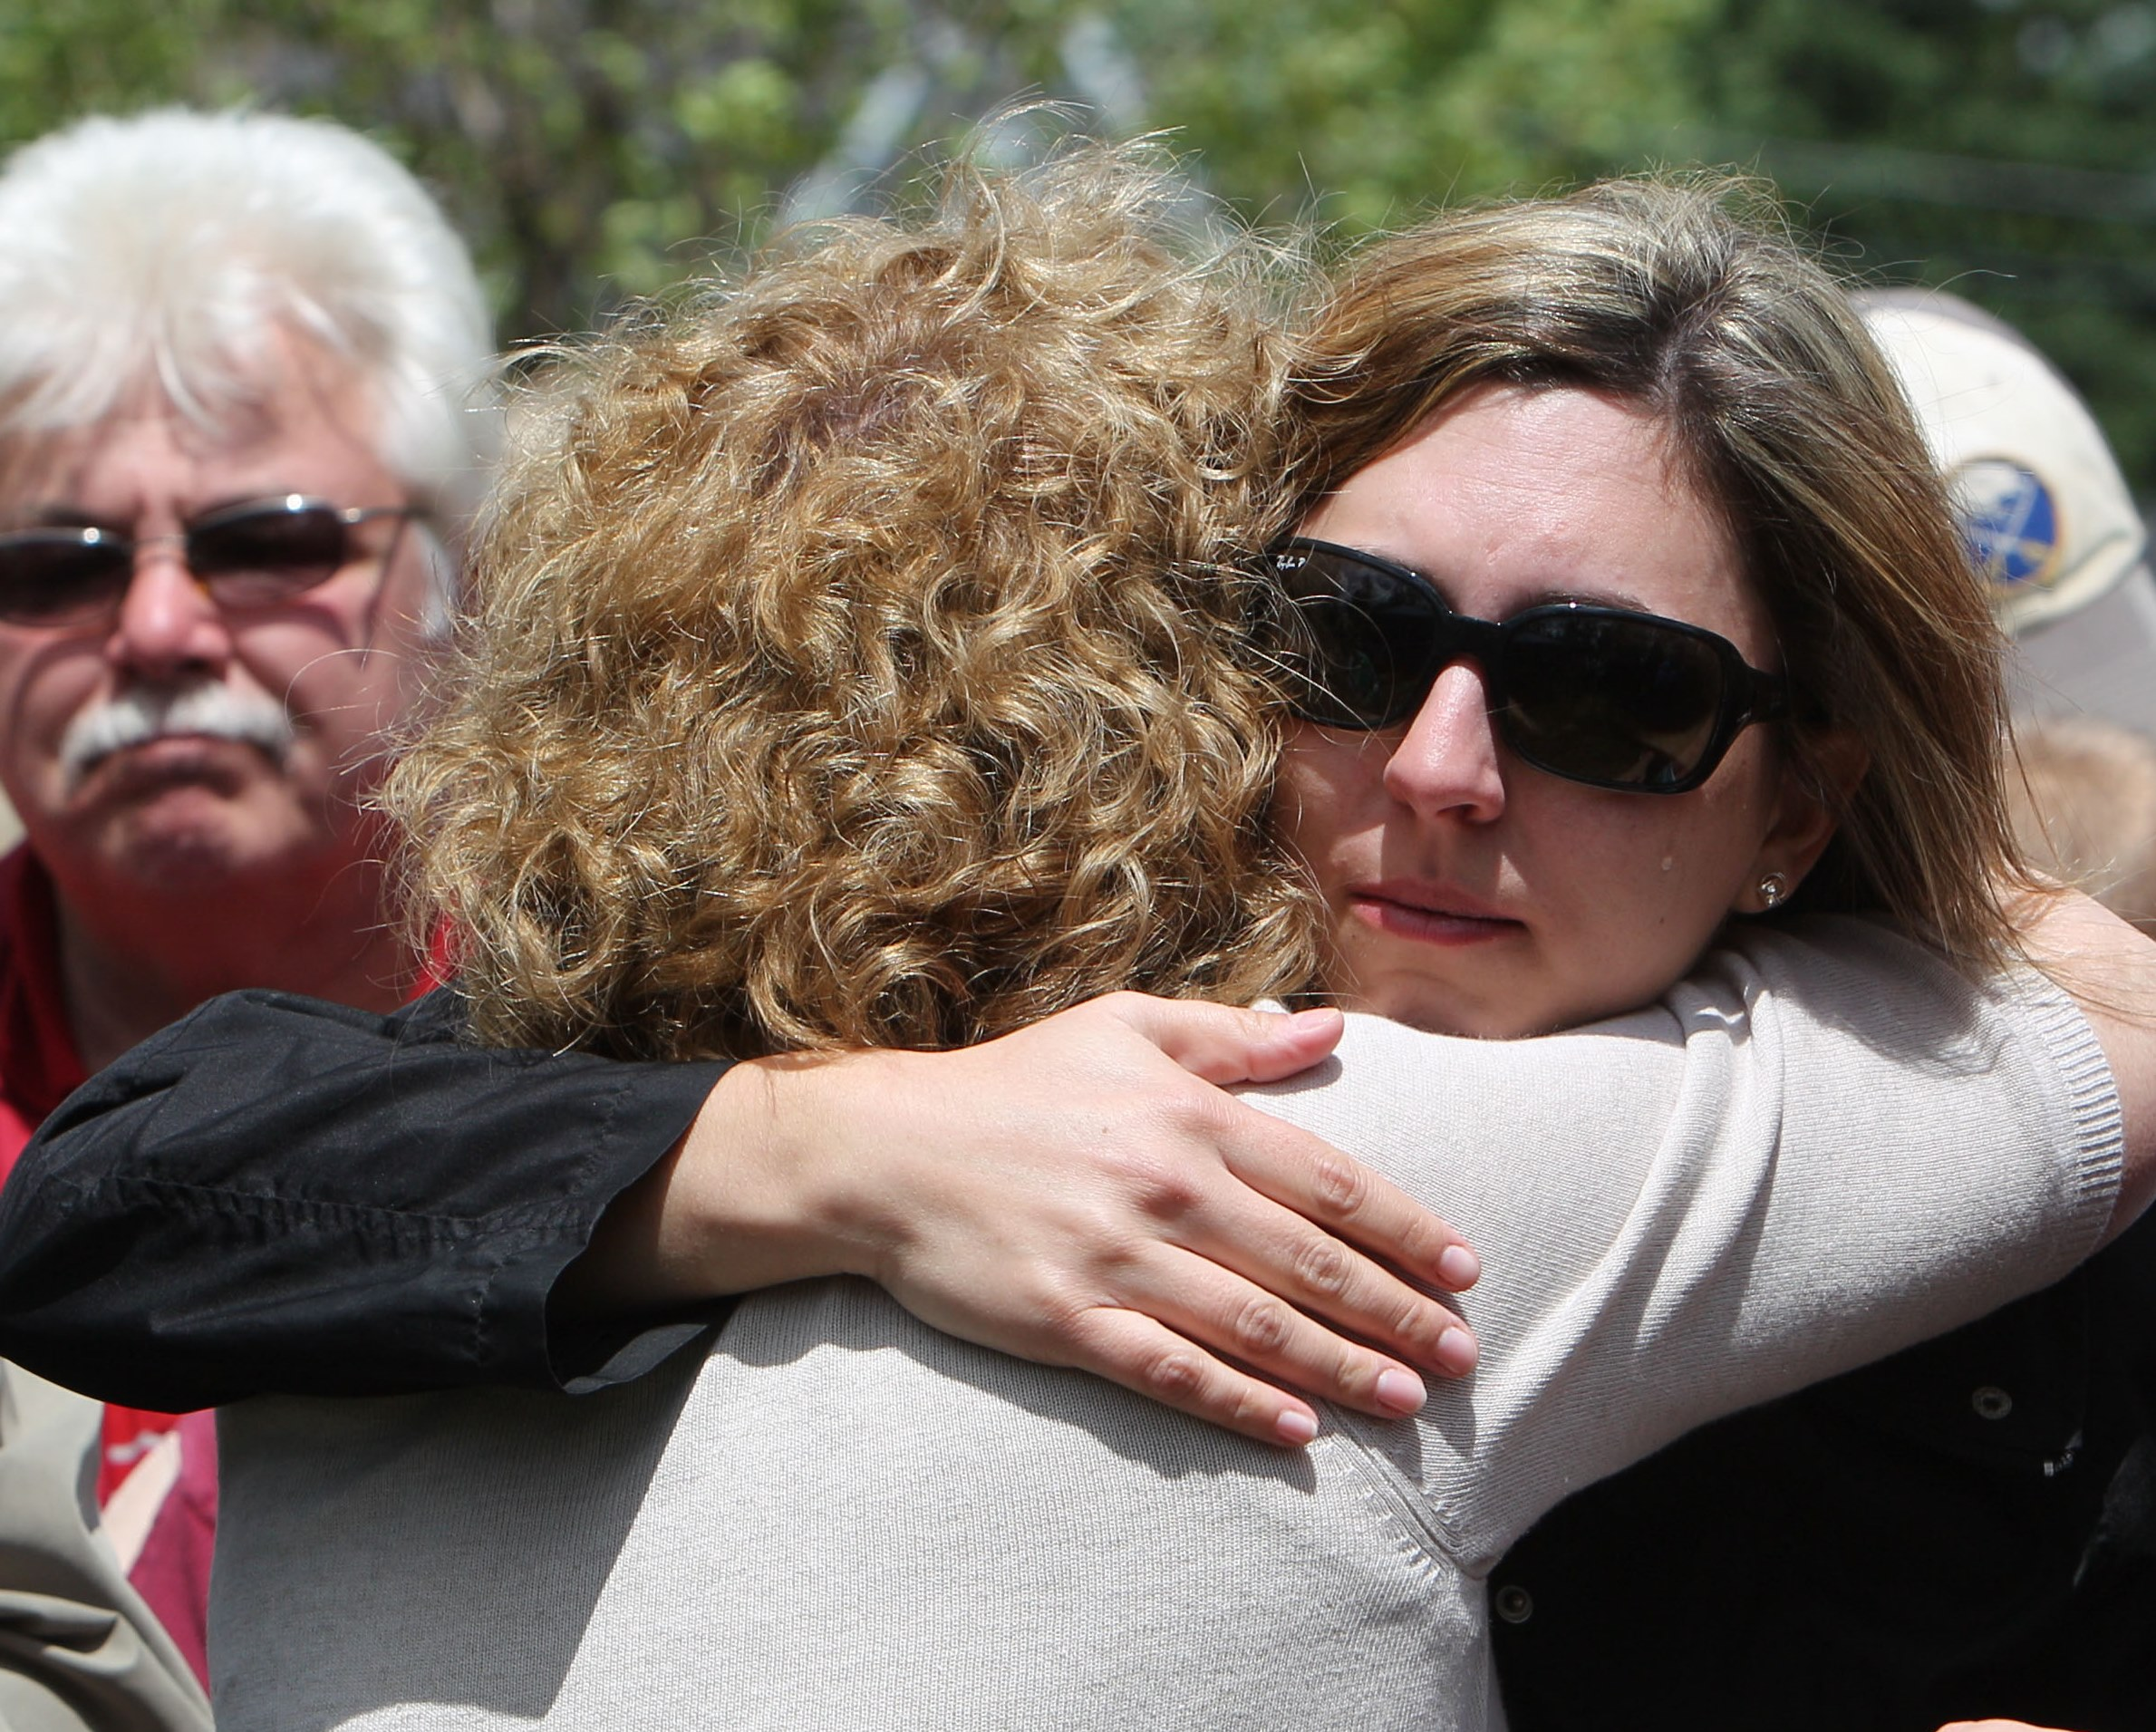 Karen Wielinski, left, hugs her daughter Lori Tiede at the 2012 dedication of the Flight 3407 memorial where their home used to be. (News file photo)